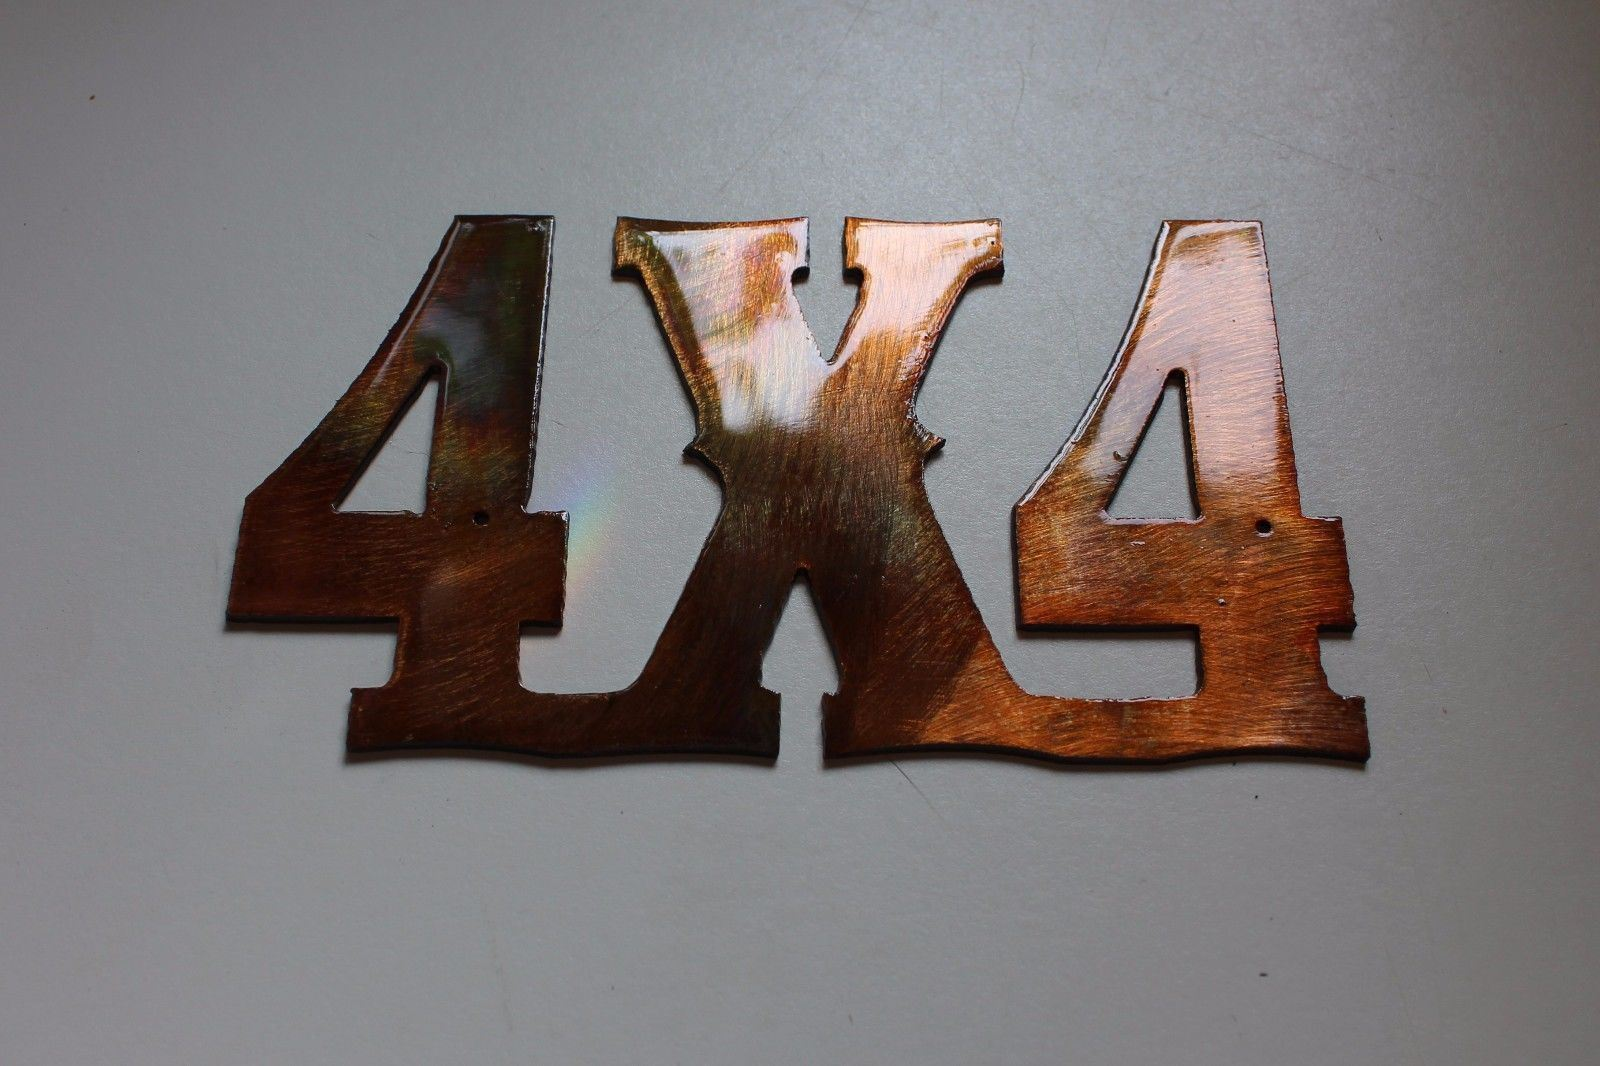 4x4 Sign Copper/Bronze Plated Metal Wall Decor